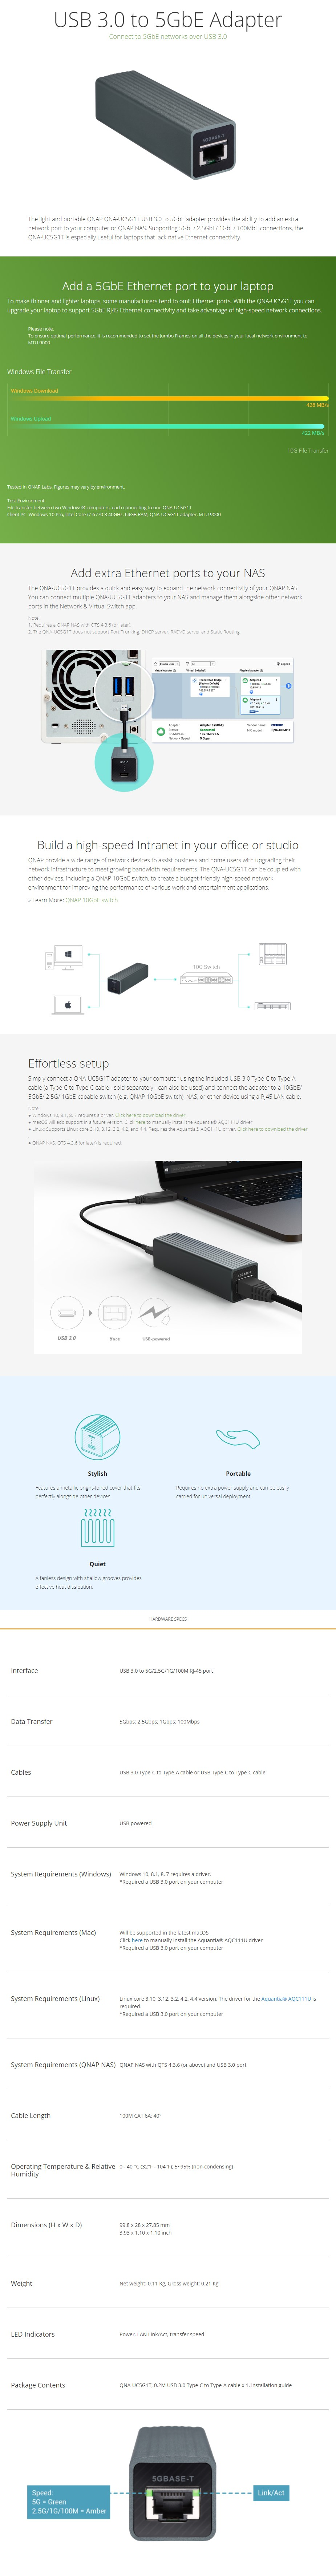 QNAP QNA-UC5G1T USB 3 0 to 5GbE Adapter